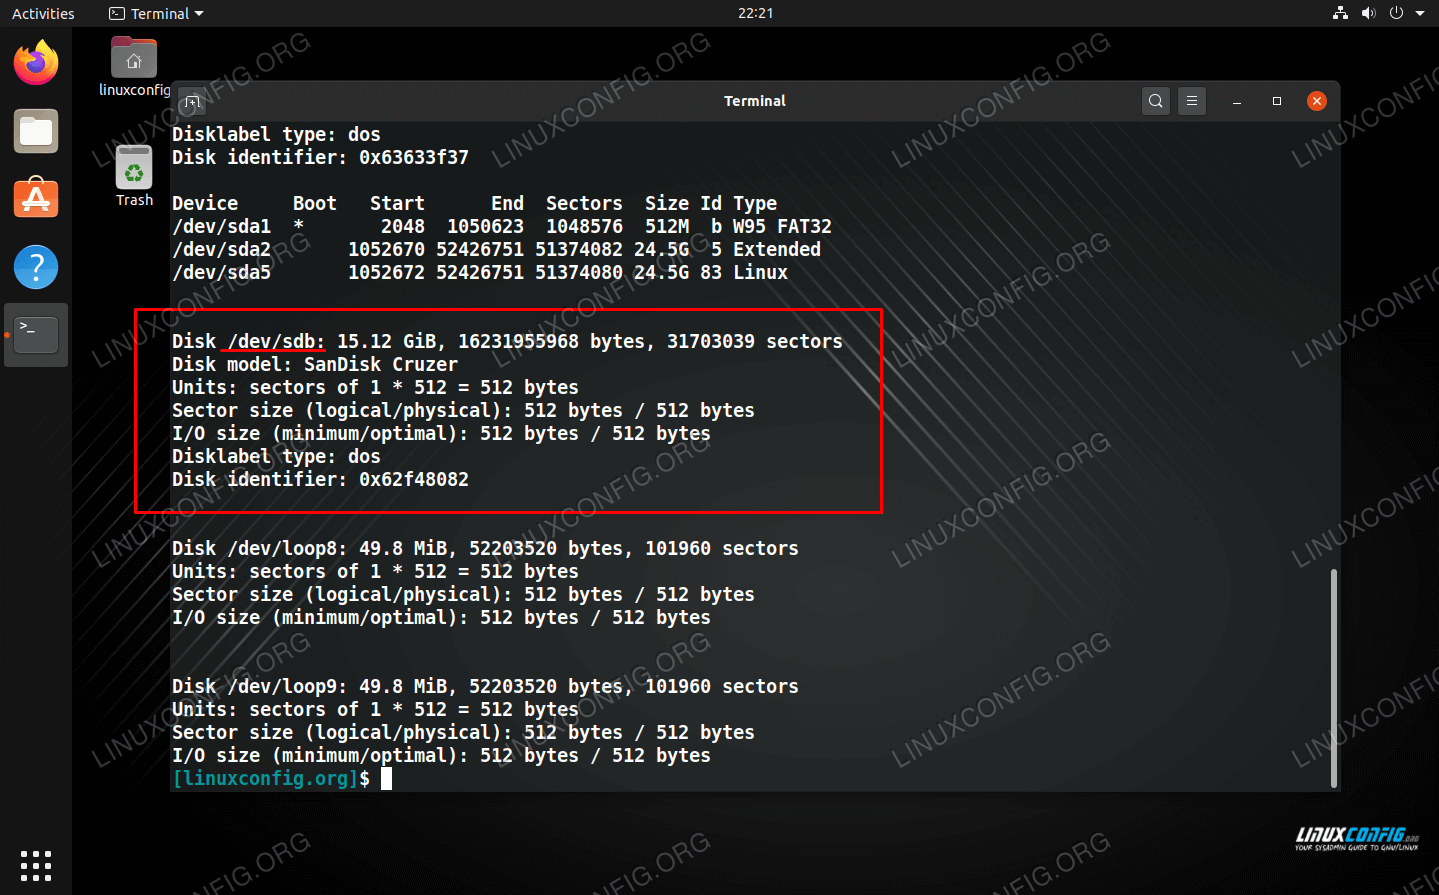 Find your device name in the fdisk output